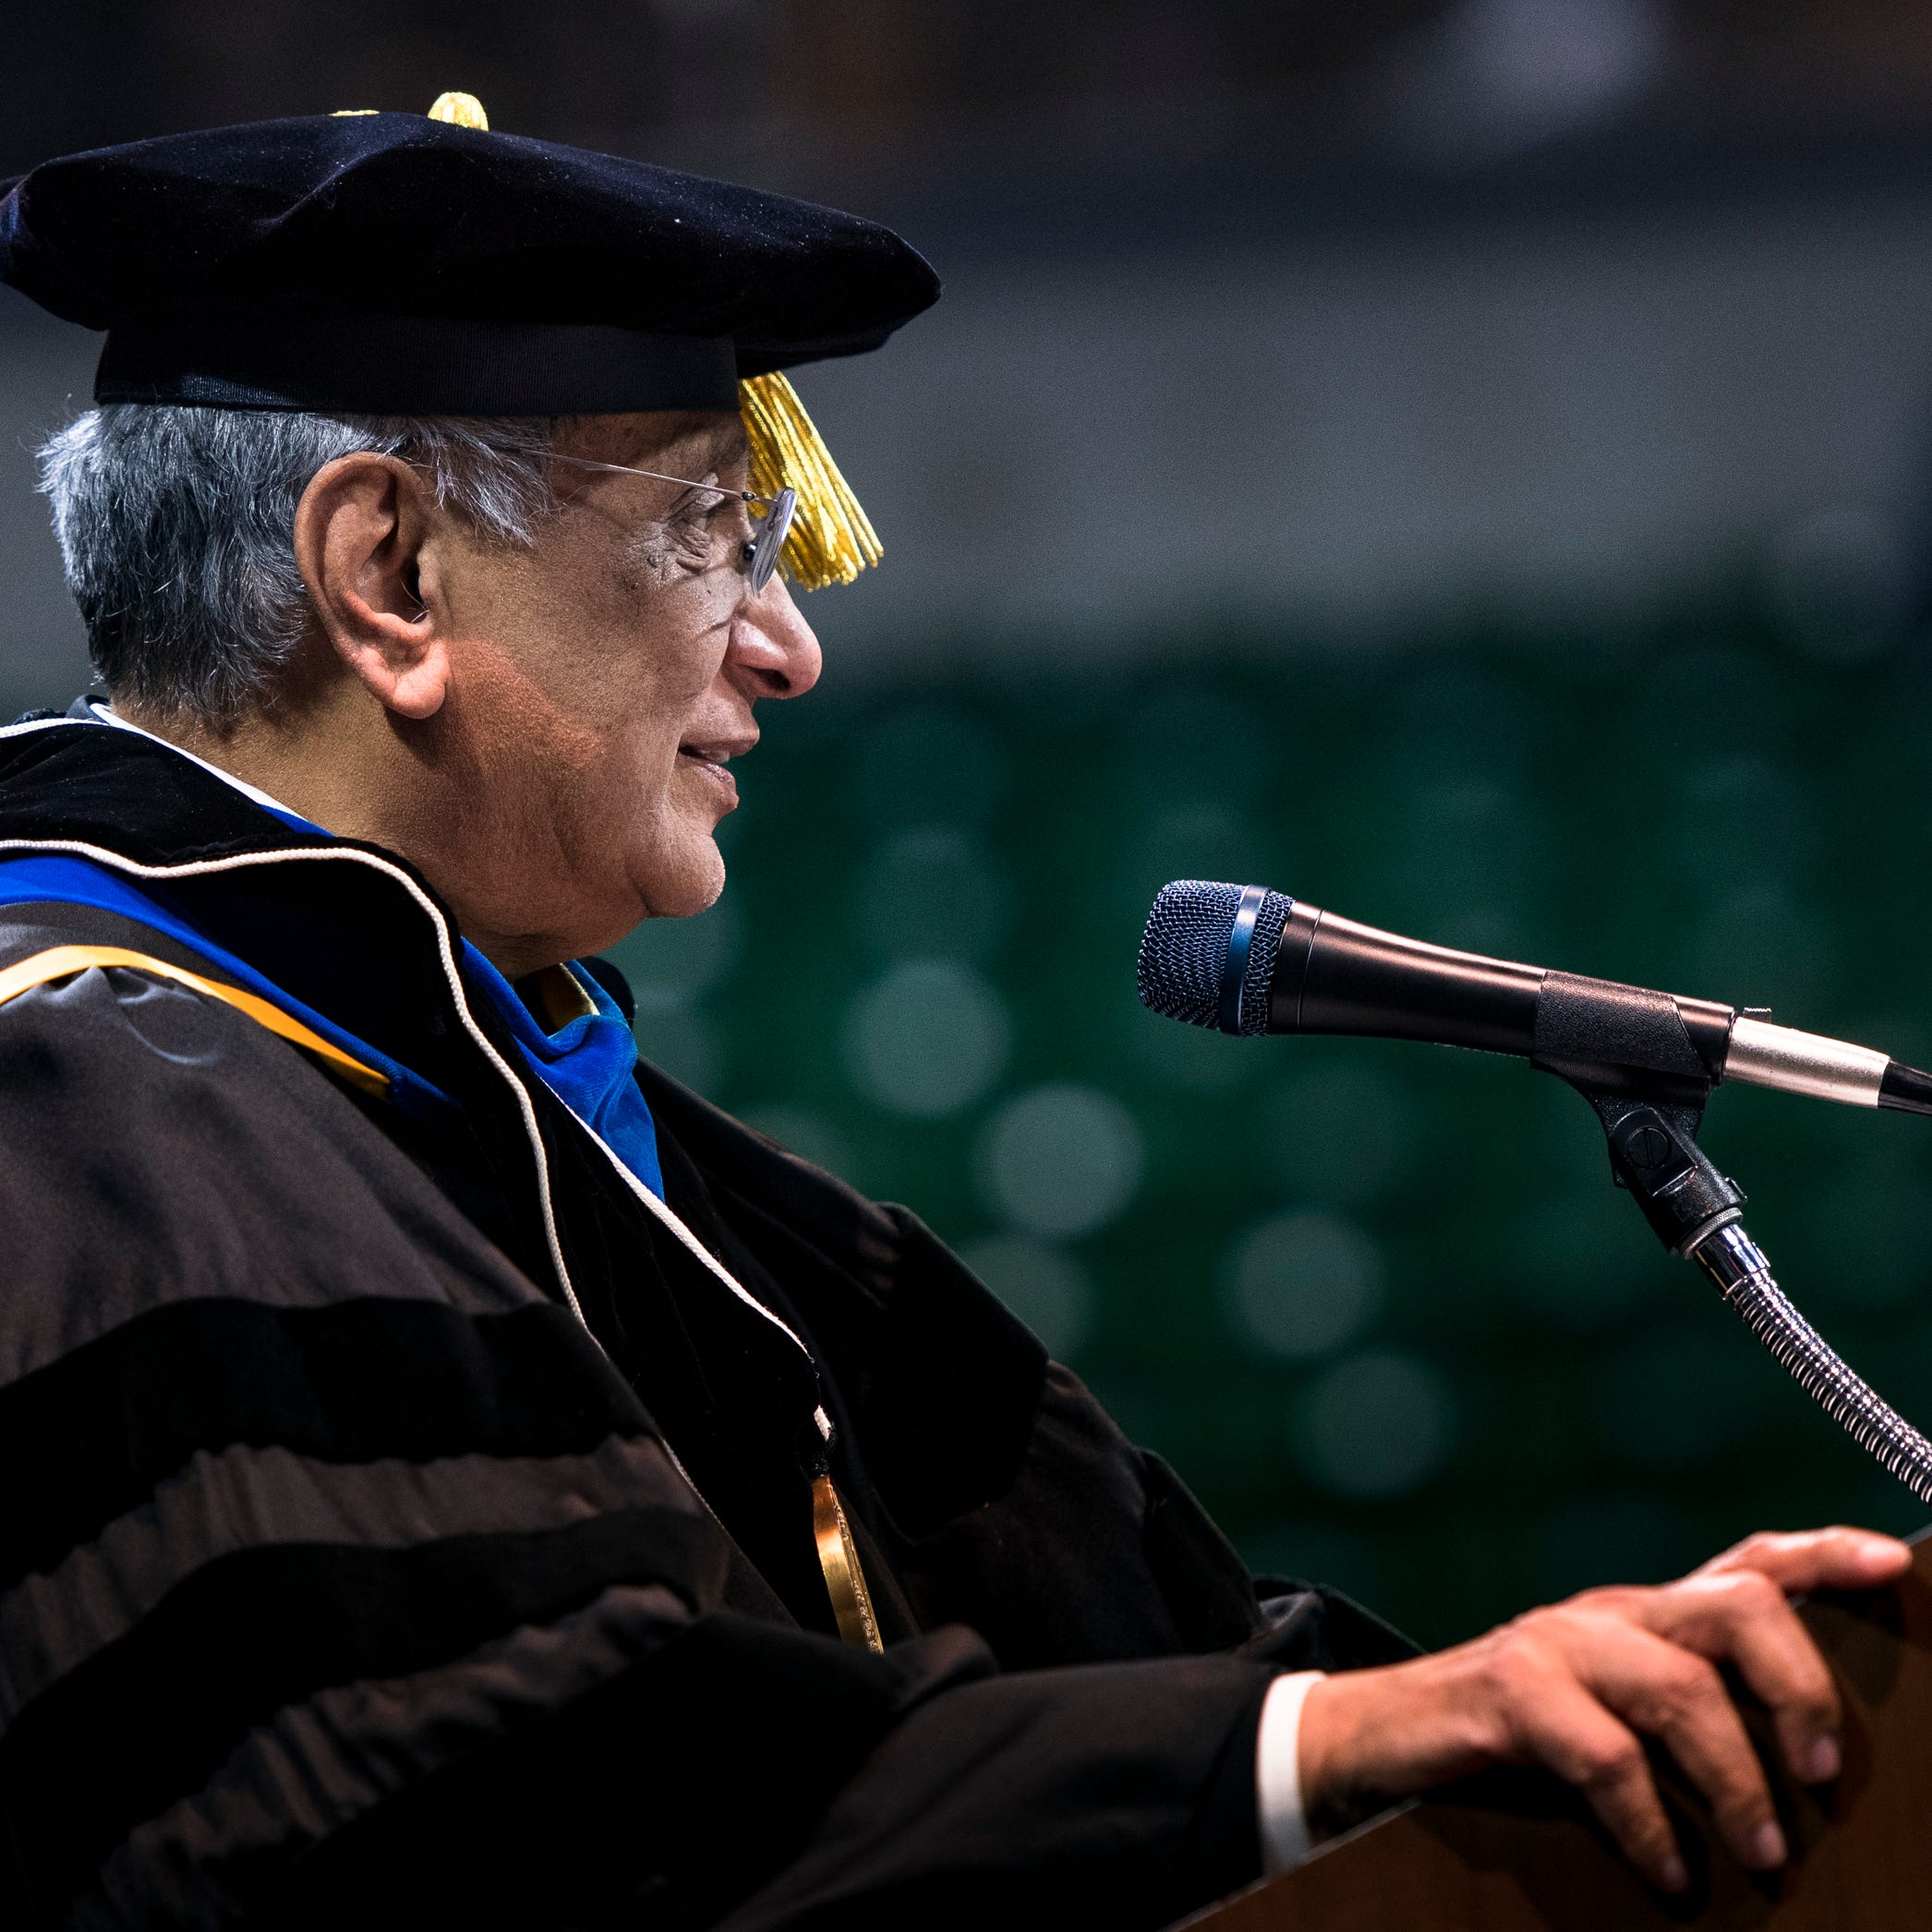 Acting MSU President Udpa hospitalized after falling during commencement ceremony